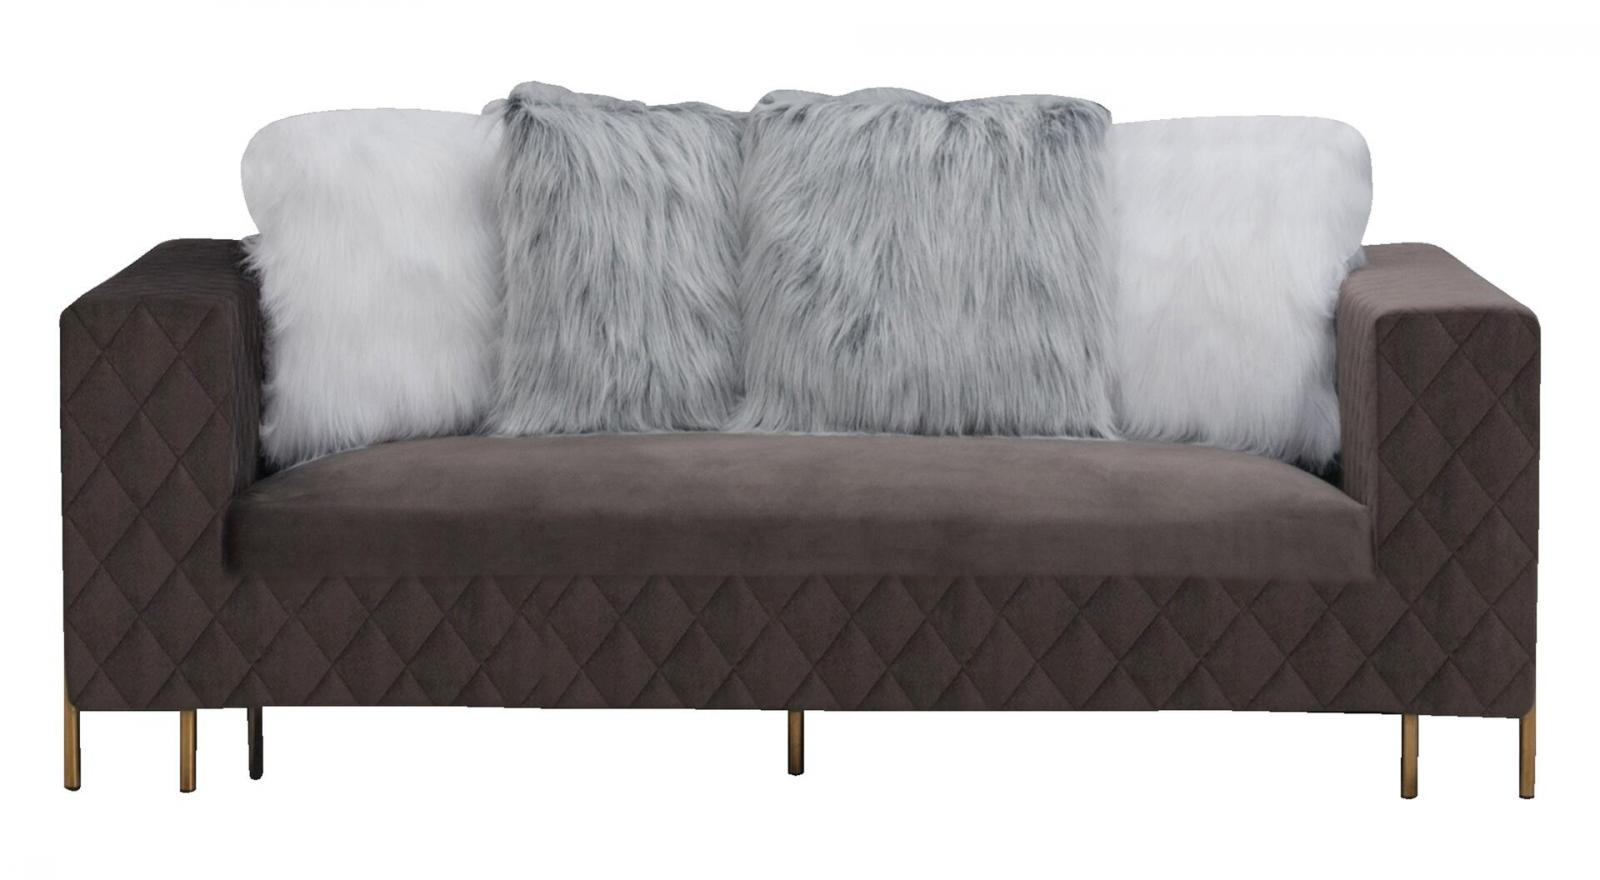 Modern Gray Fabric Sofa 1 pcs Cosmos Furniture Madison-Sofa